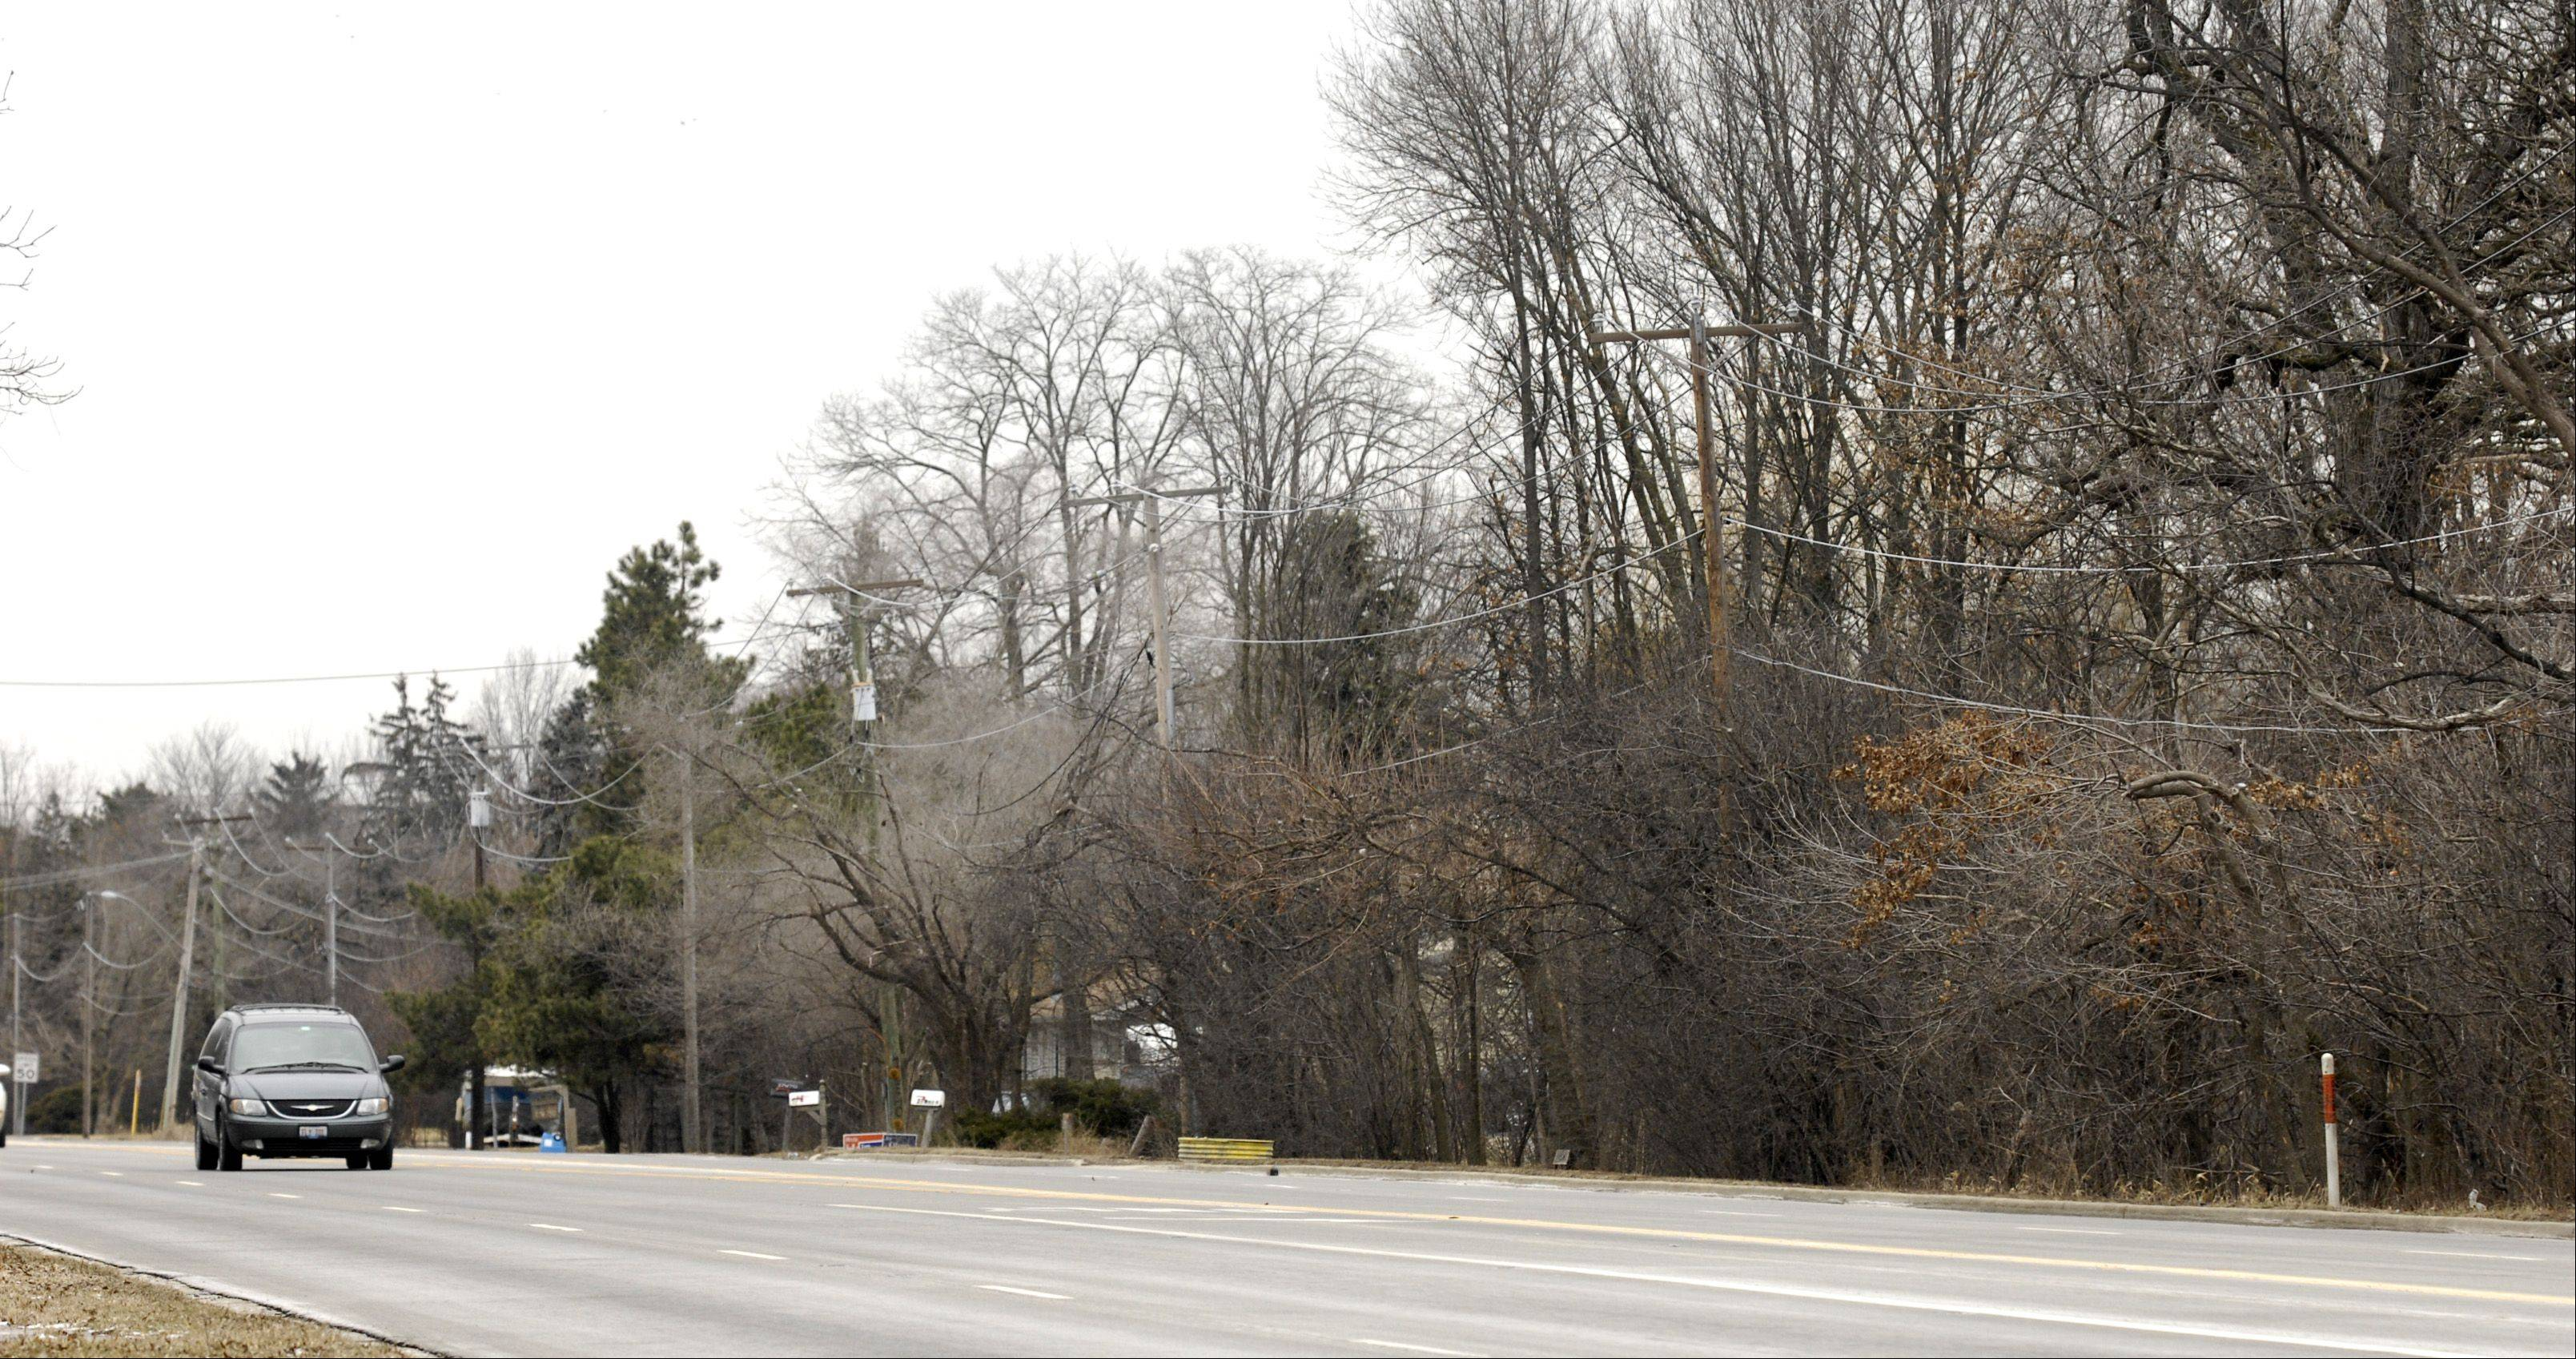 A majority on Winfield's village board has approved a plan to rezone parcels along Roosevelt Road to make it possible for businesses to locate in the area.